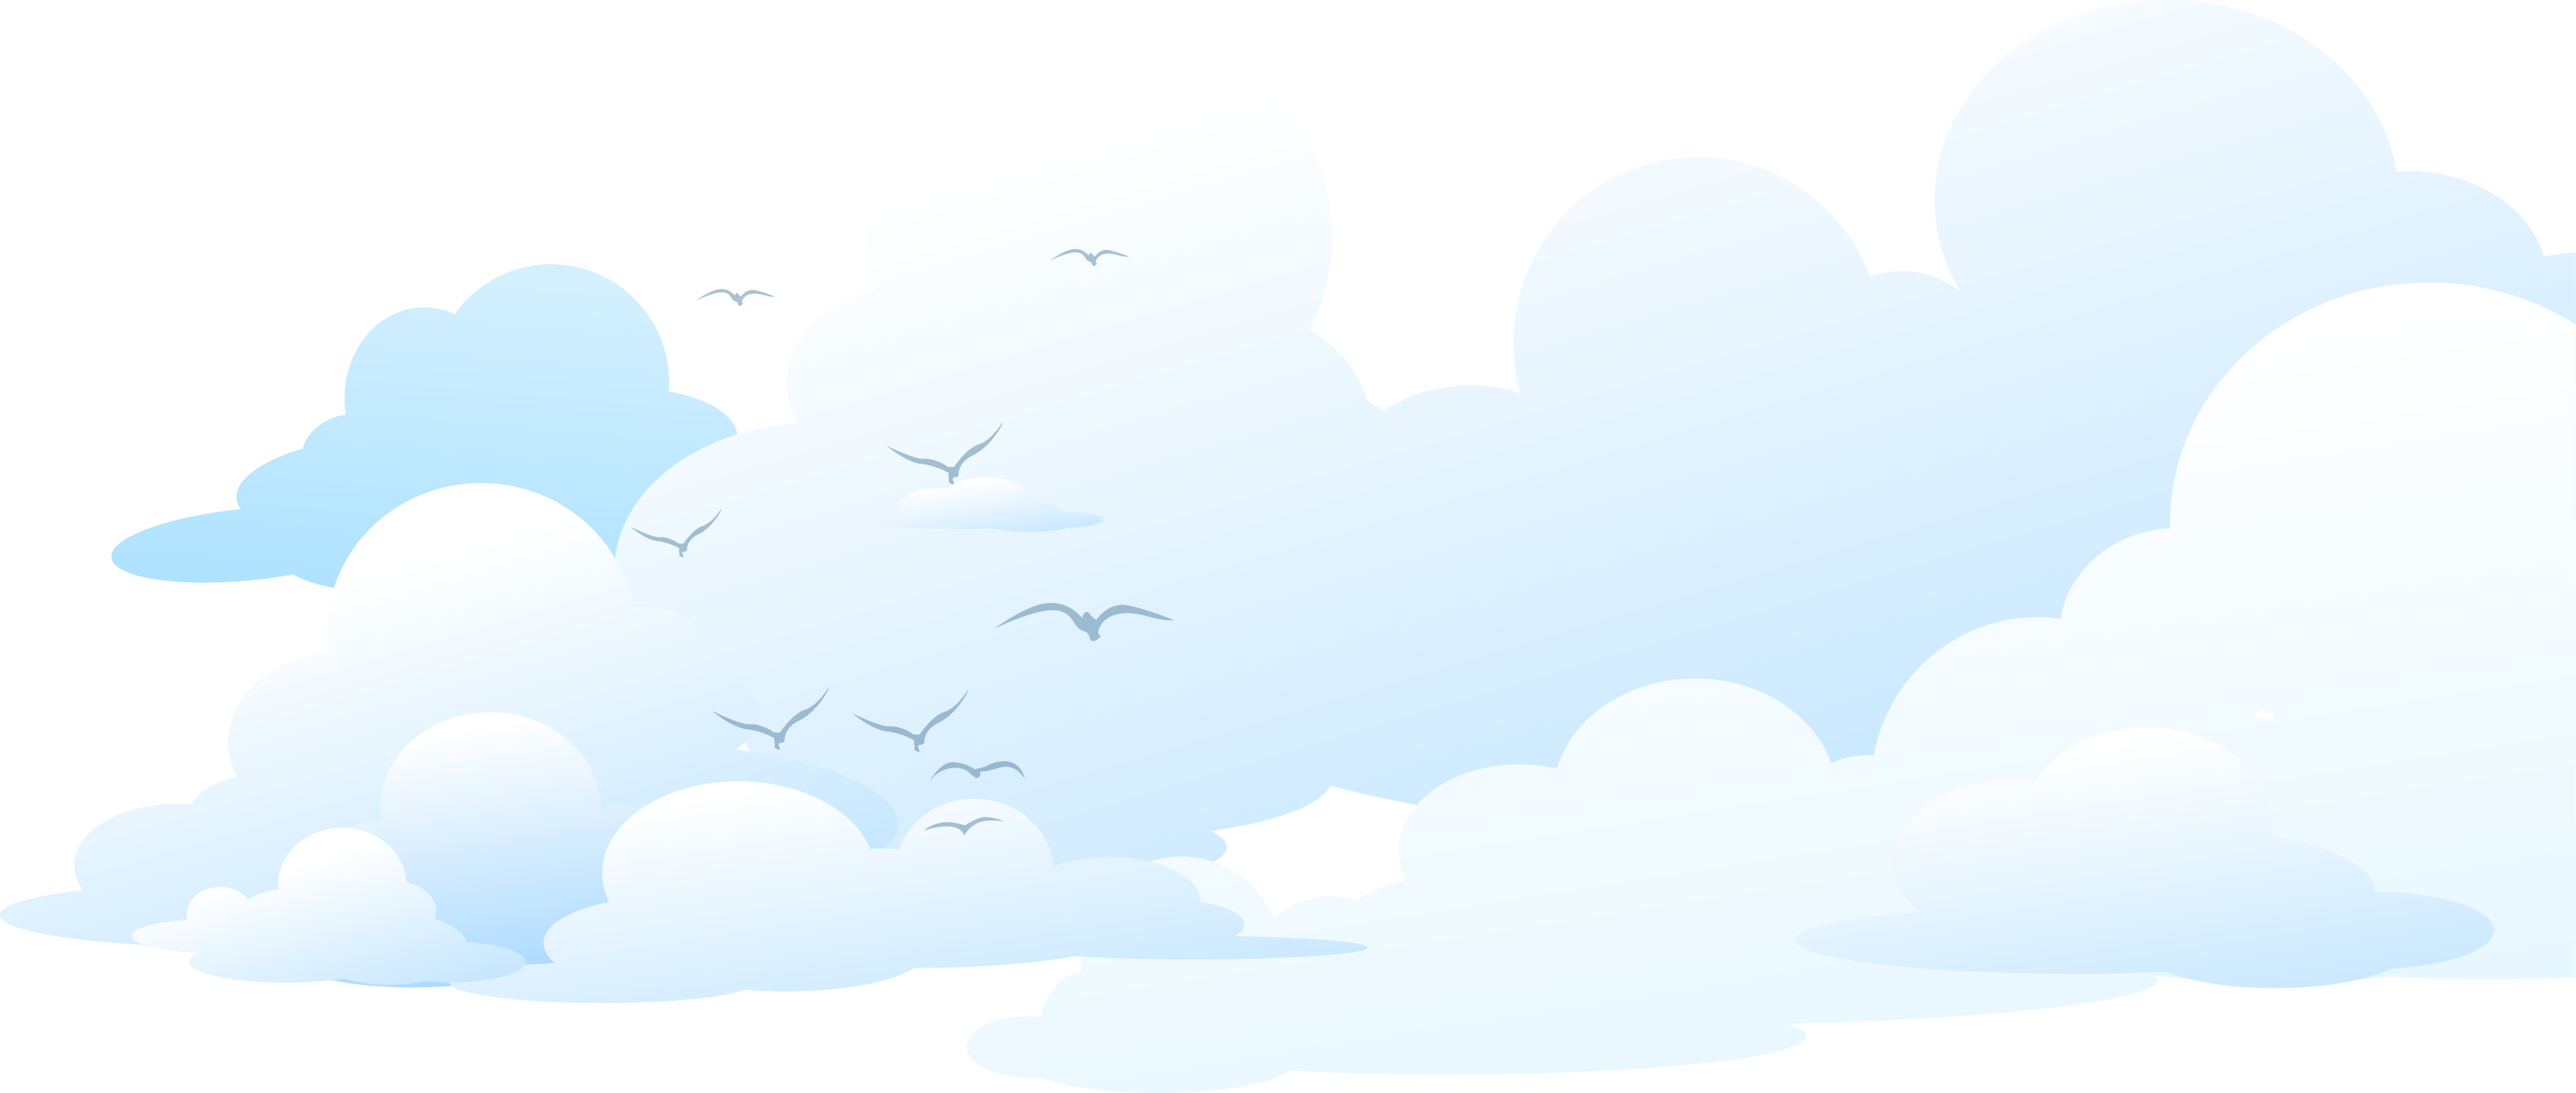 30+ Transparent Clouds Png Cartoon Pics